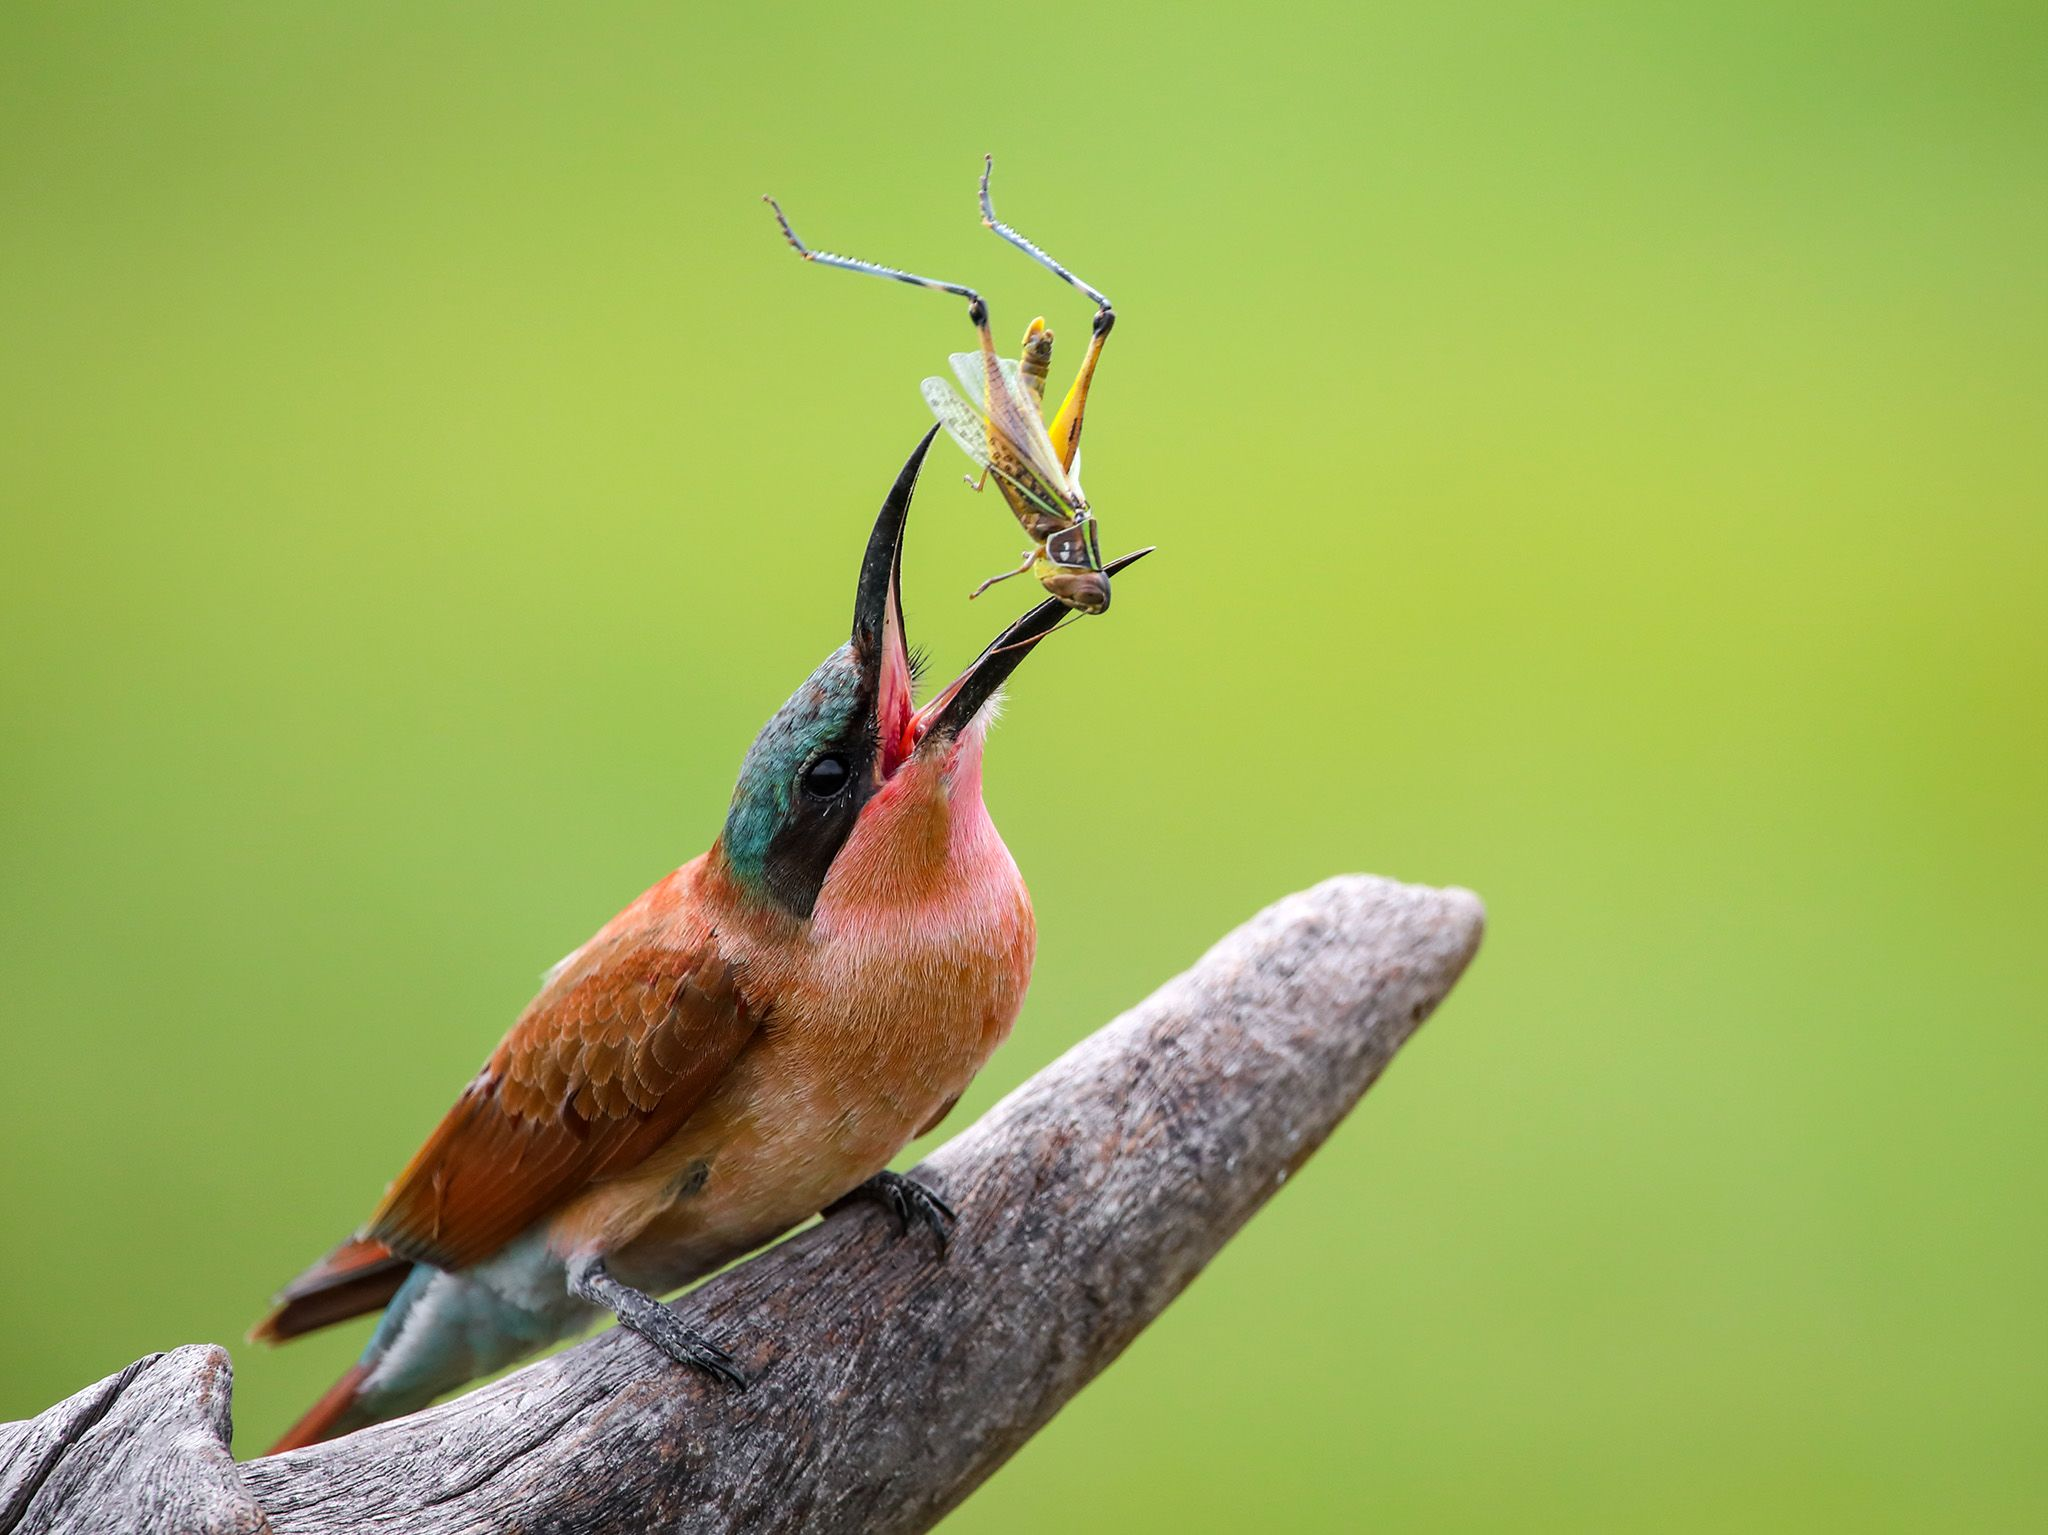 Botswana:  A Carmine Bee-eater tosses a grasshopper into the air, rearranging it to knock off... [Foto del giorno - novembre 2018]